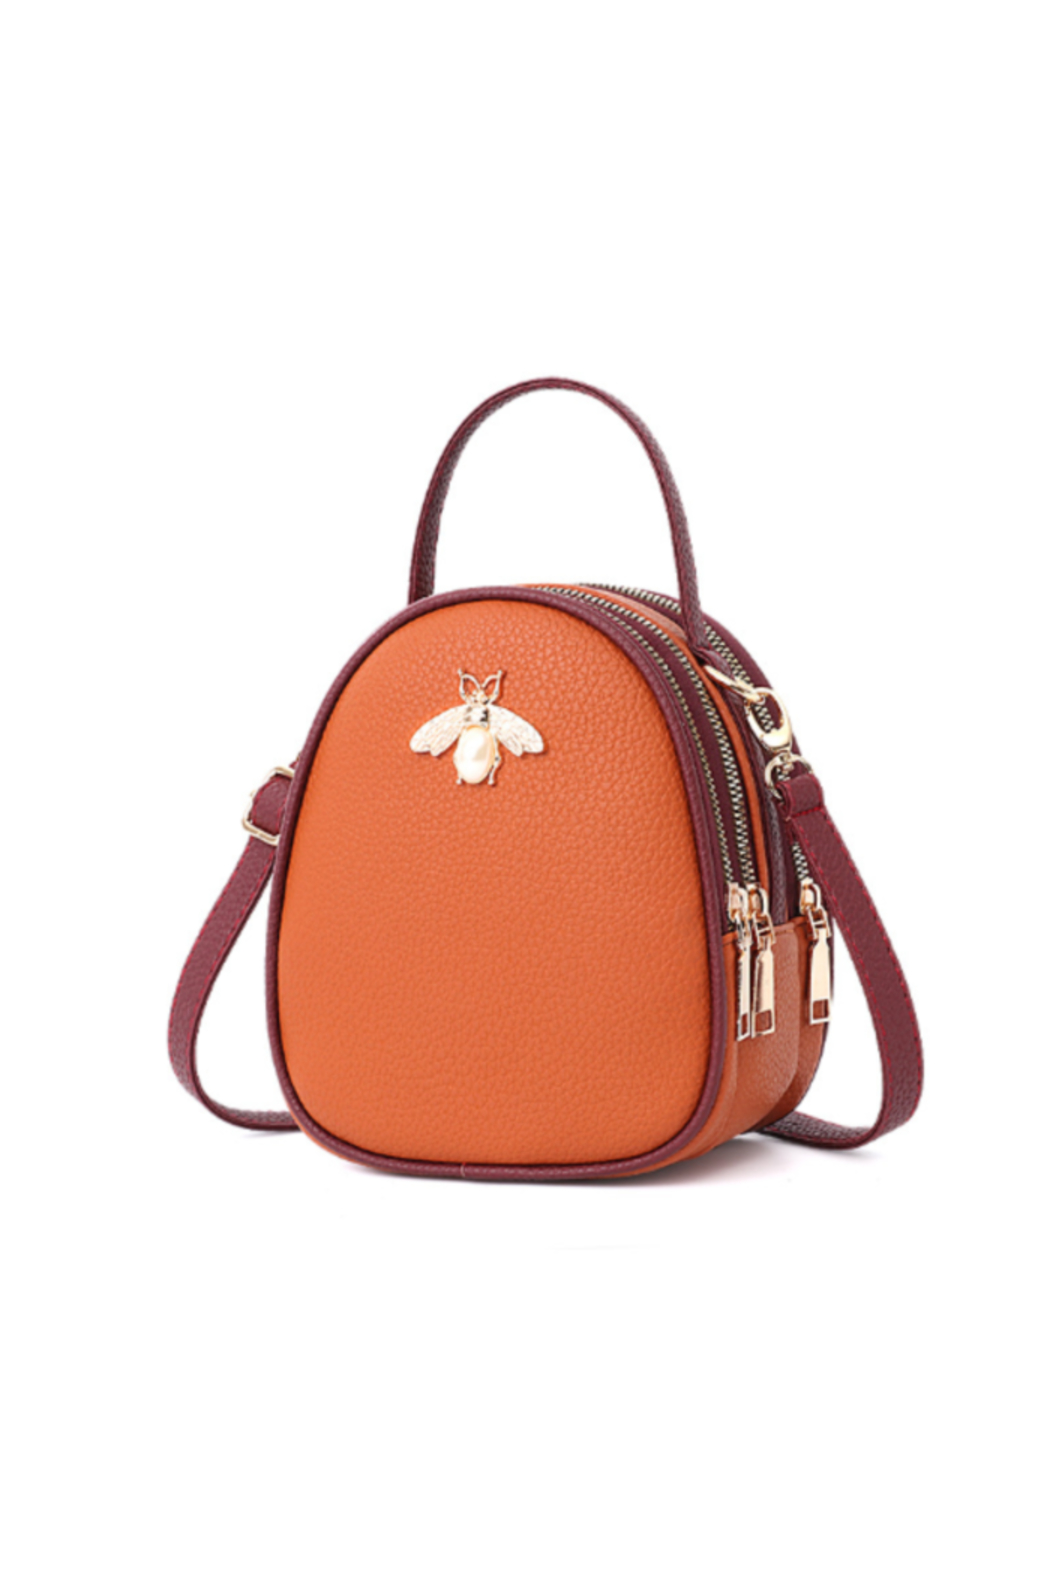 The Birds Nest LEATHER BEE BAG - Main Image